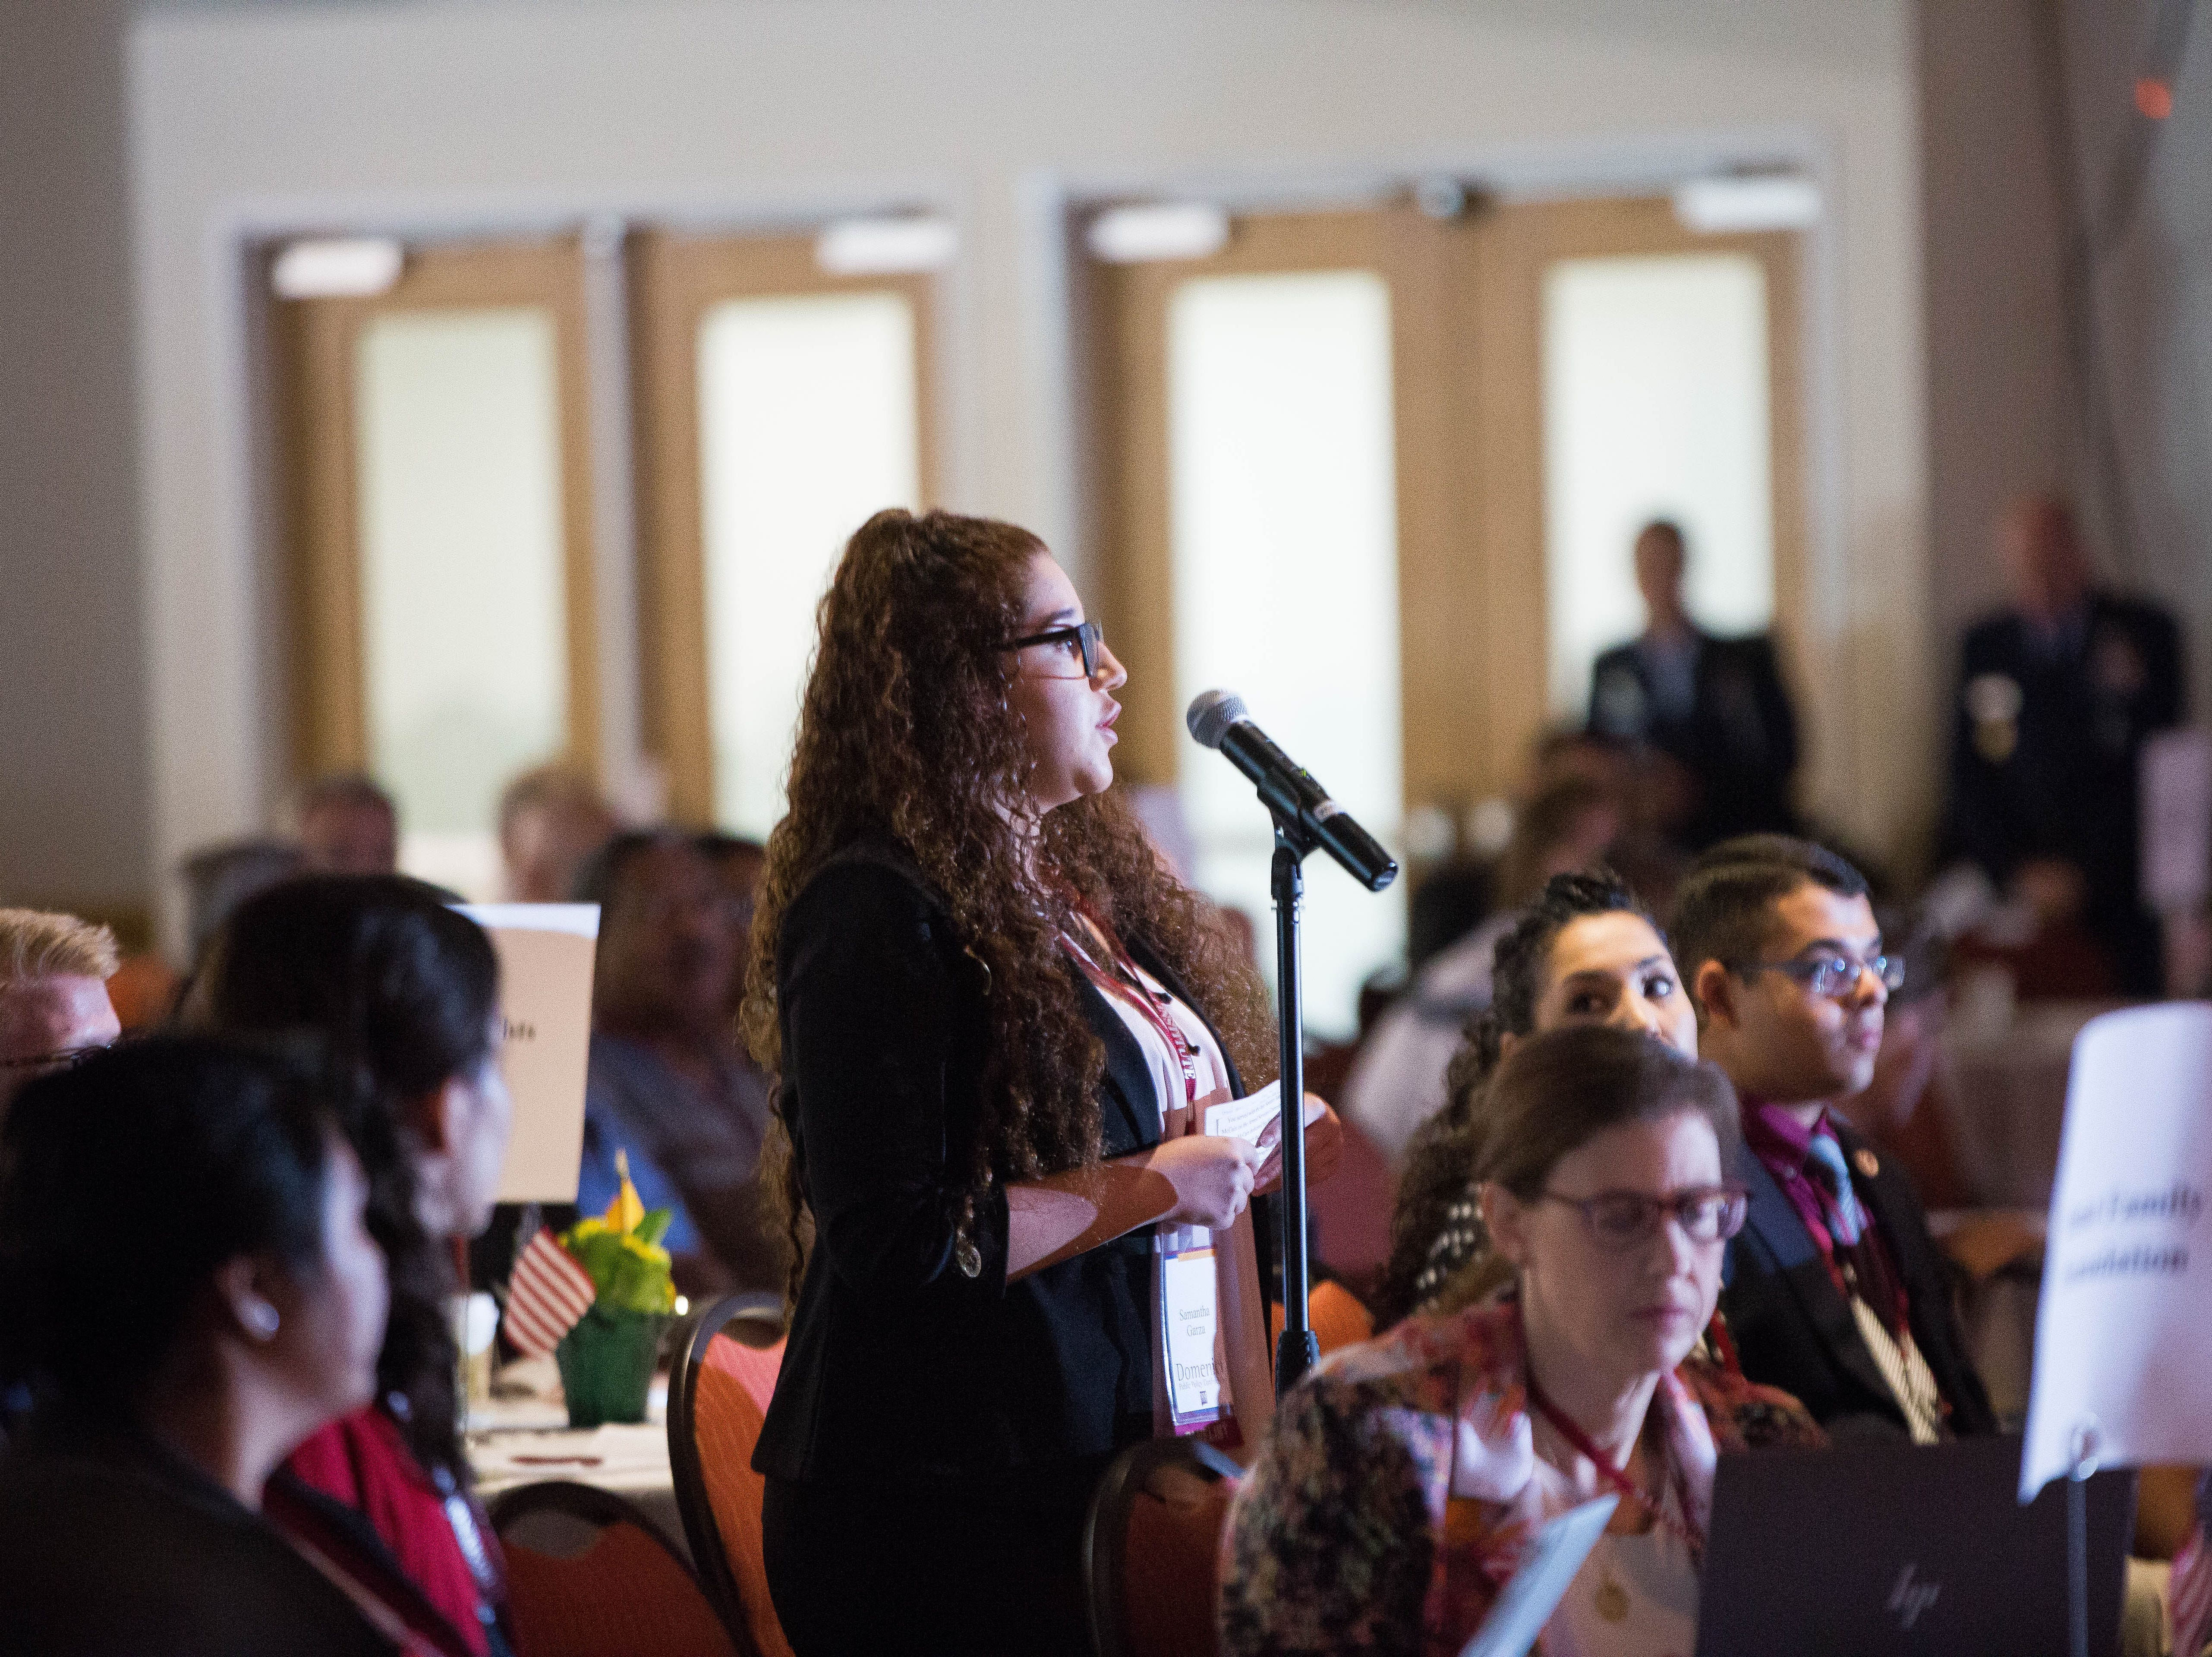 Samantha Garza, a student from New Mexico State University, asks a question to Sam Nunn, a former senator from Georgia, during the 2018 Domenici Public Policy Conference, Wednesday Sept. 12, 2018.